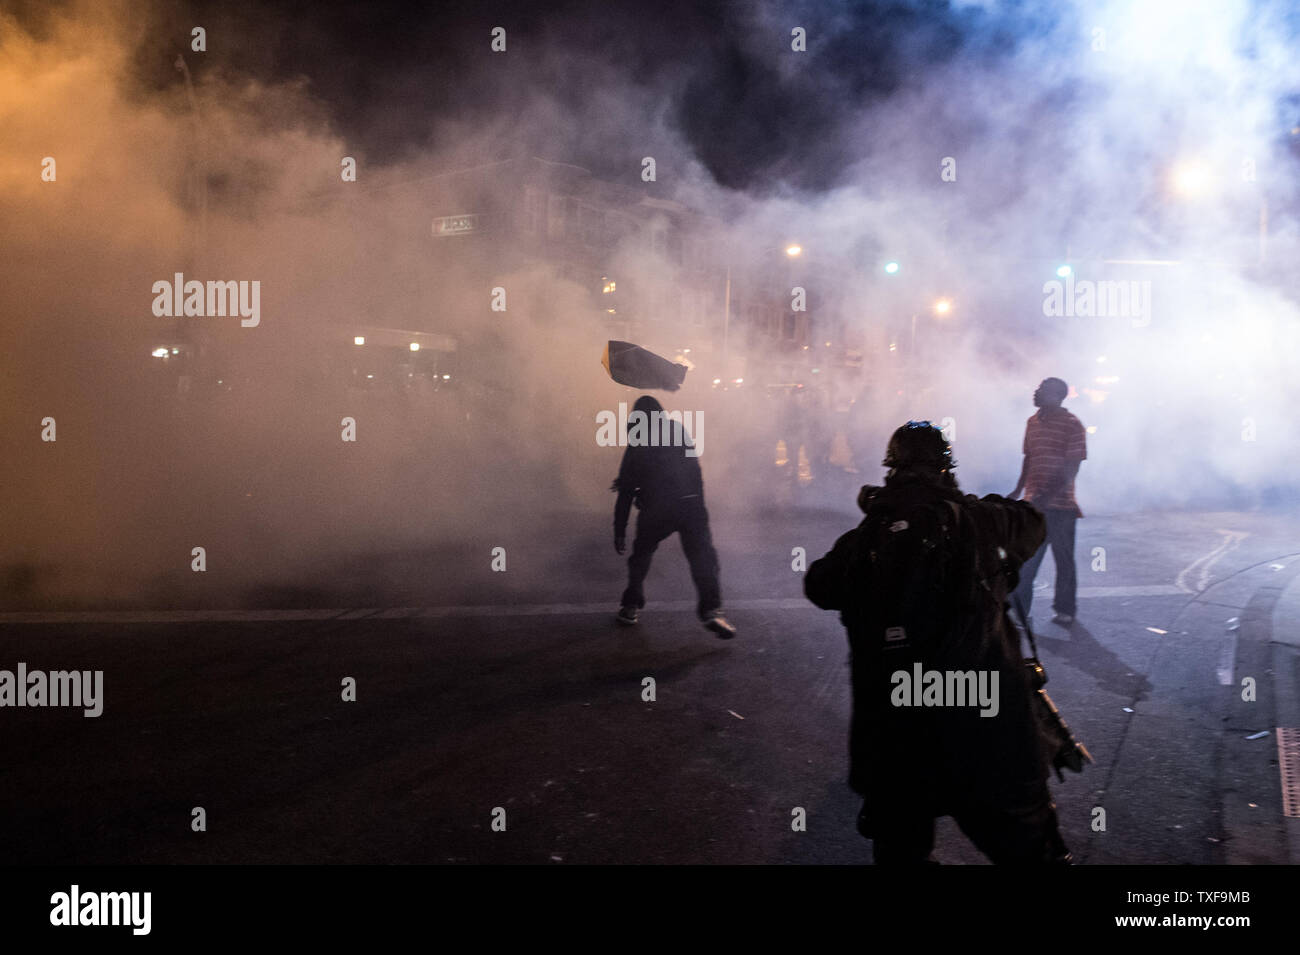 Back Fired Stock Photos & Back Fired Stock Images - Alamy